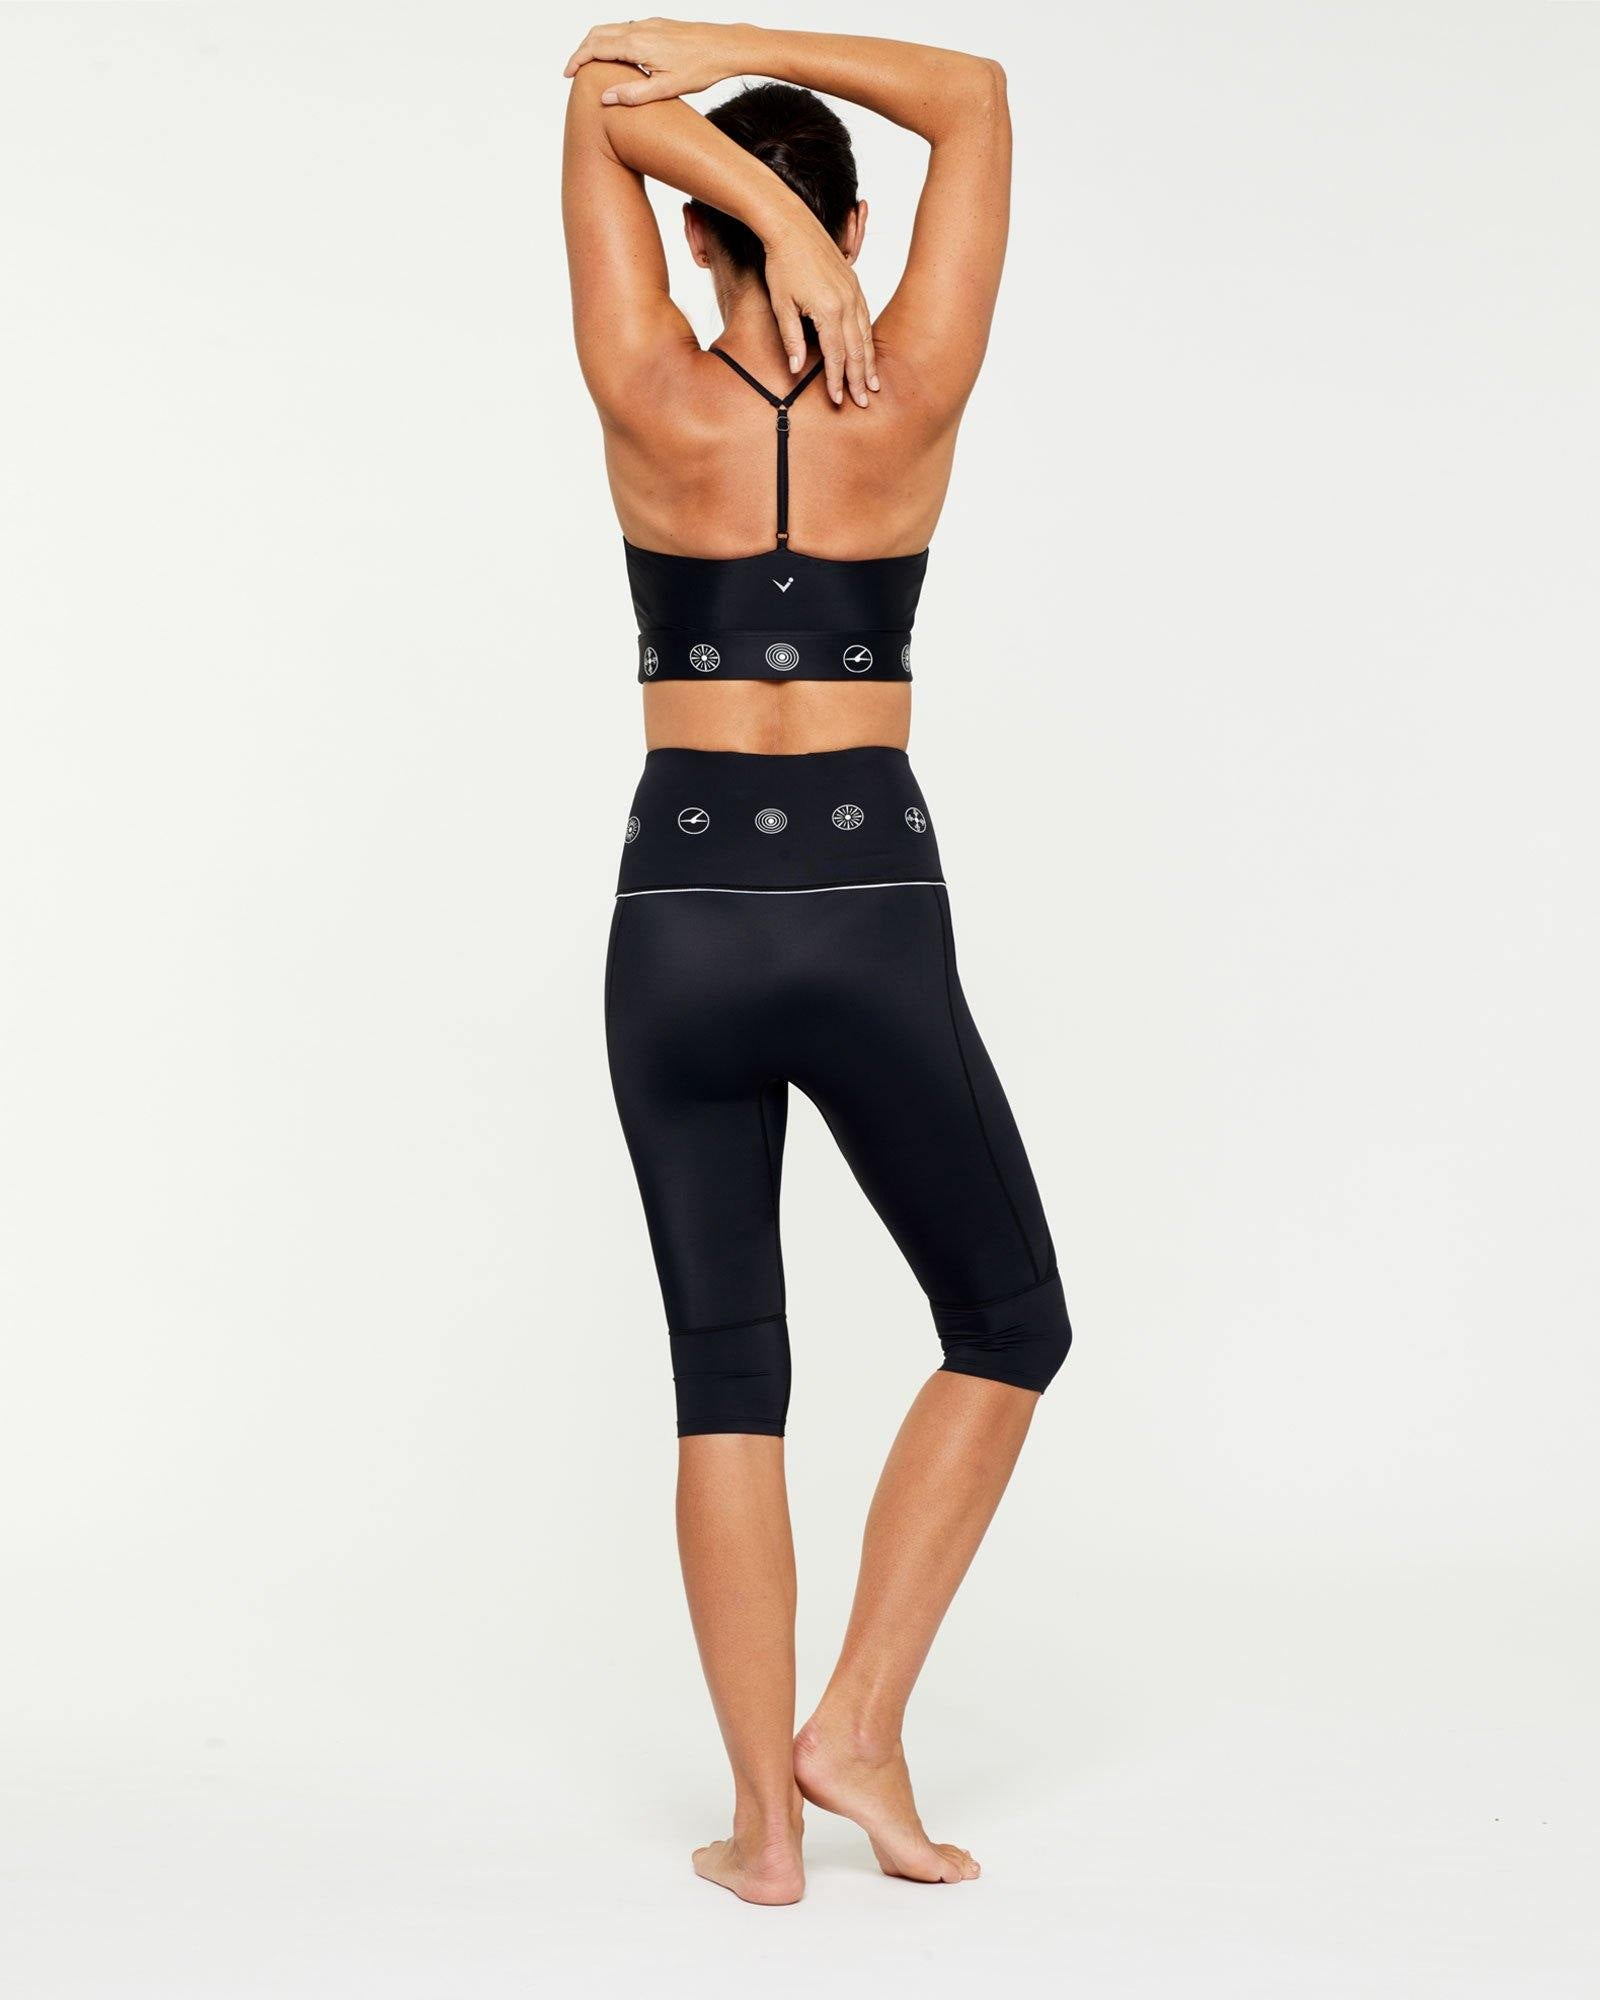 Trapezius Companion crop top high neck finish worn with Sartorius pedal pusher short, black with white symbols, back view